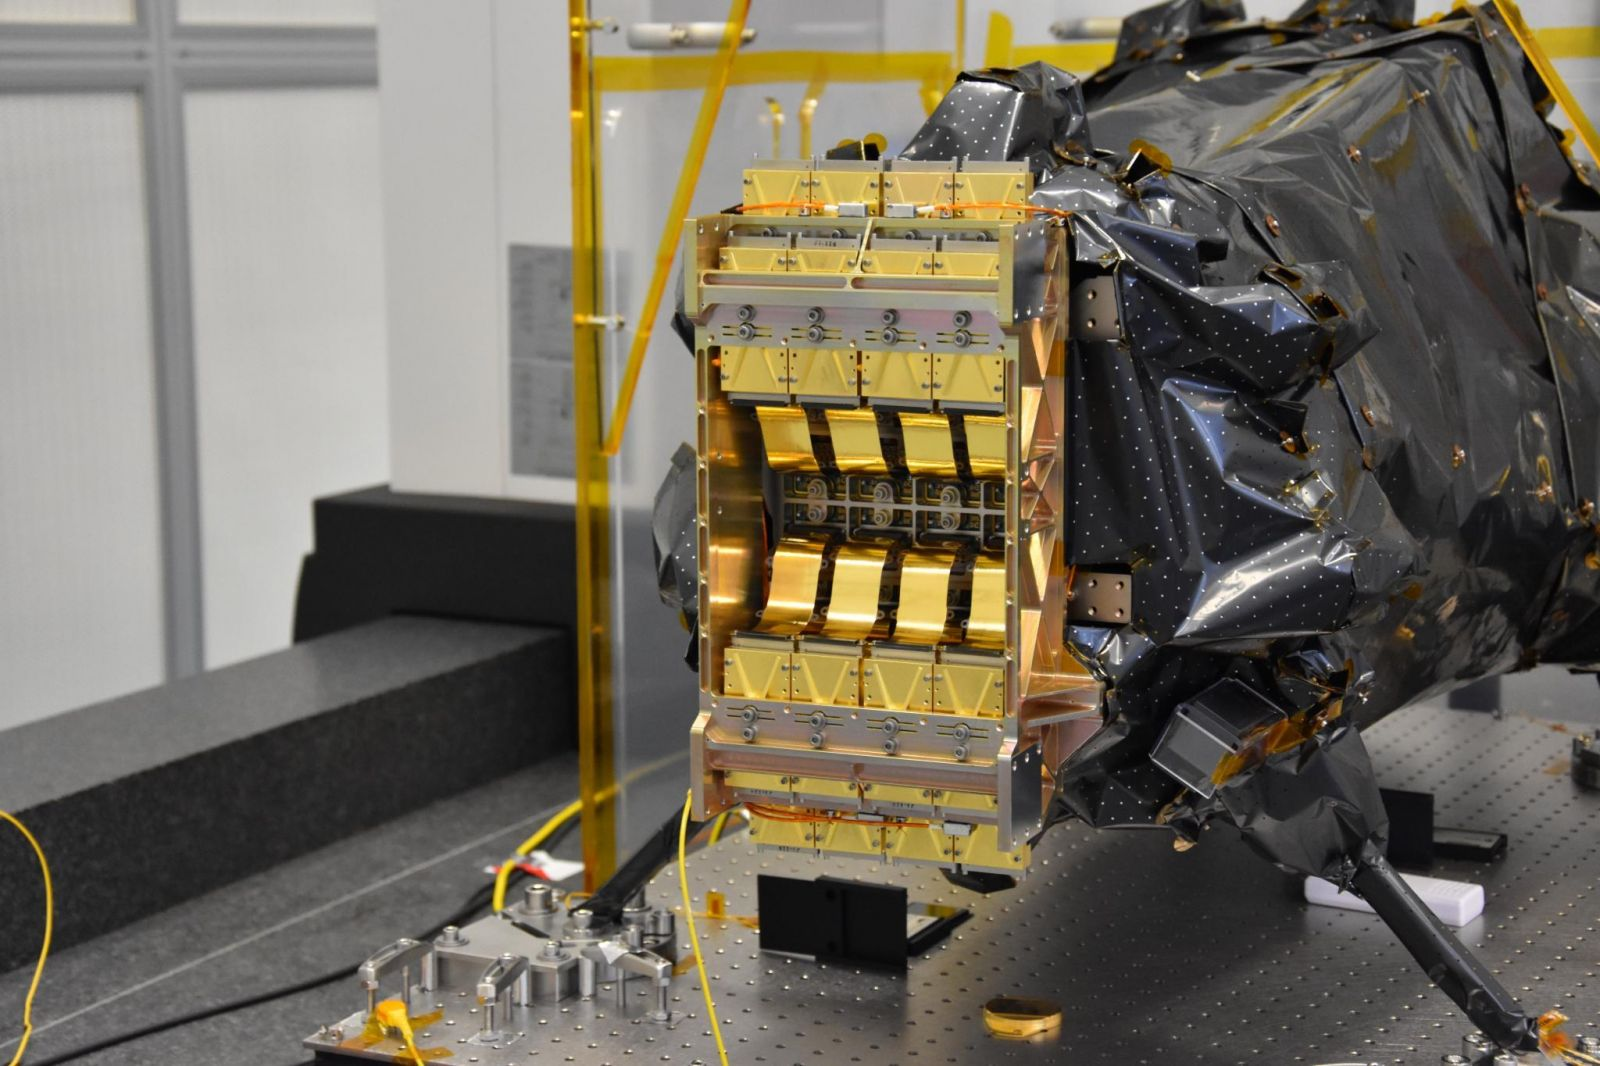 The cryogenic (cold) portion of the Euclid space telescope's Near Infrared Spectrometer and Photometer (NISP) instrument. NASA led the procurement and delivery of the detectors for the NISP instrument. The gold-coated hardware is the 16 sensor-chip electronics integrated with the infrared sensors. Photo Credit: Euclid Consortium/CPPM/LAM